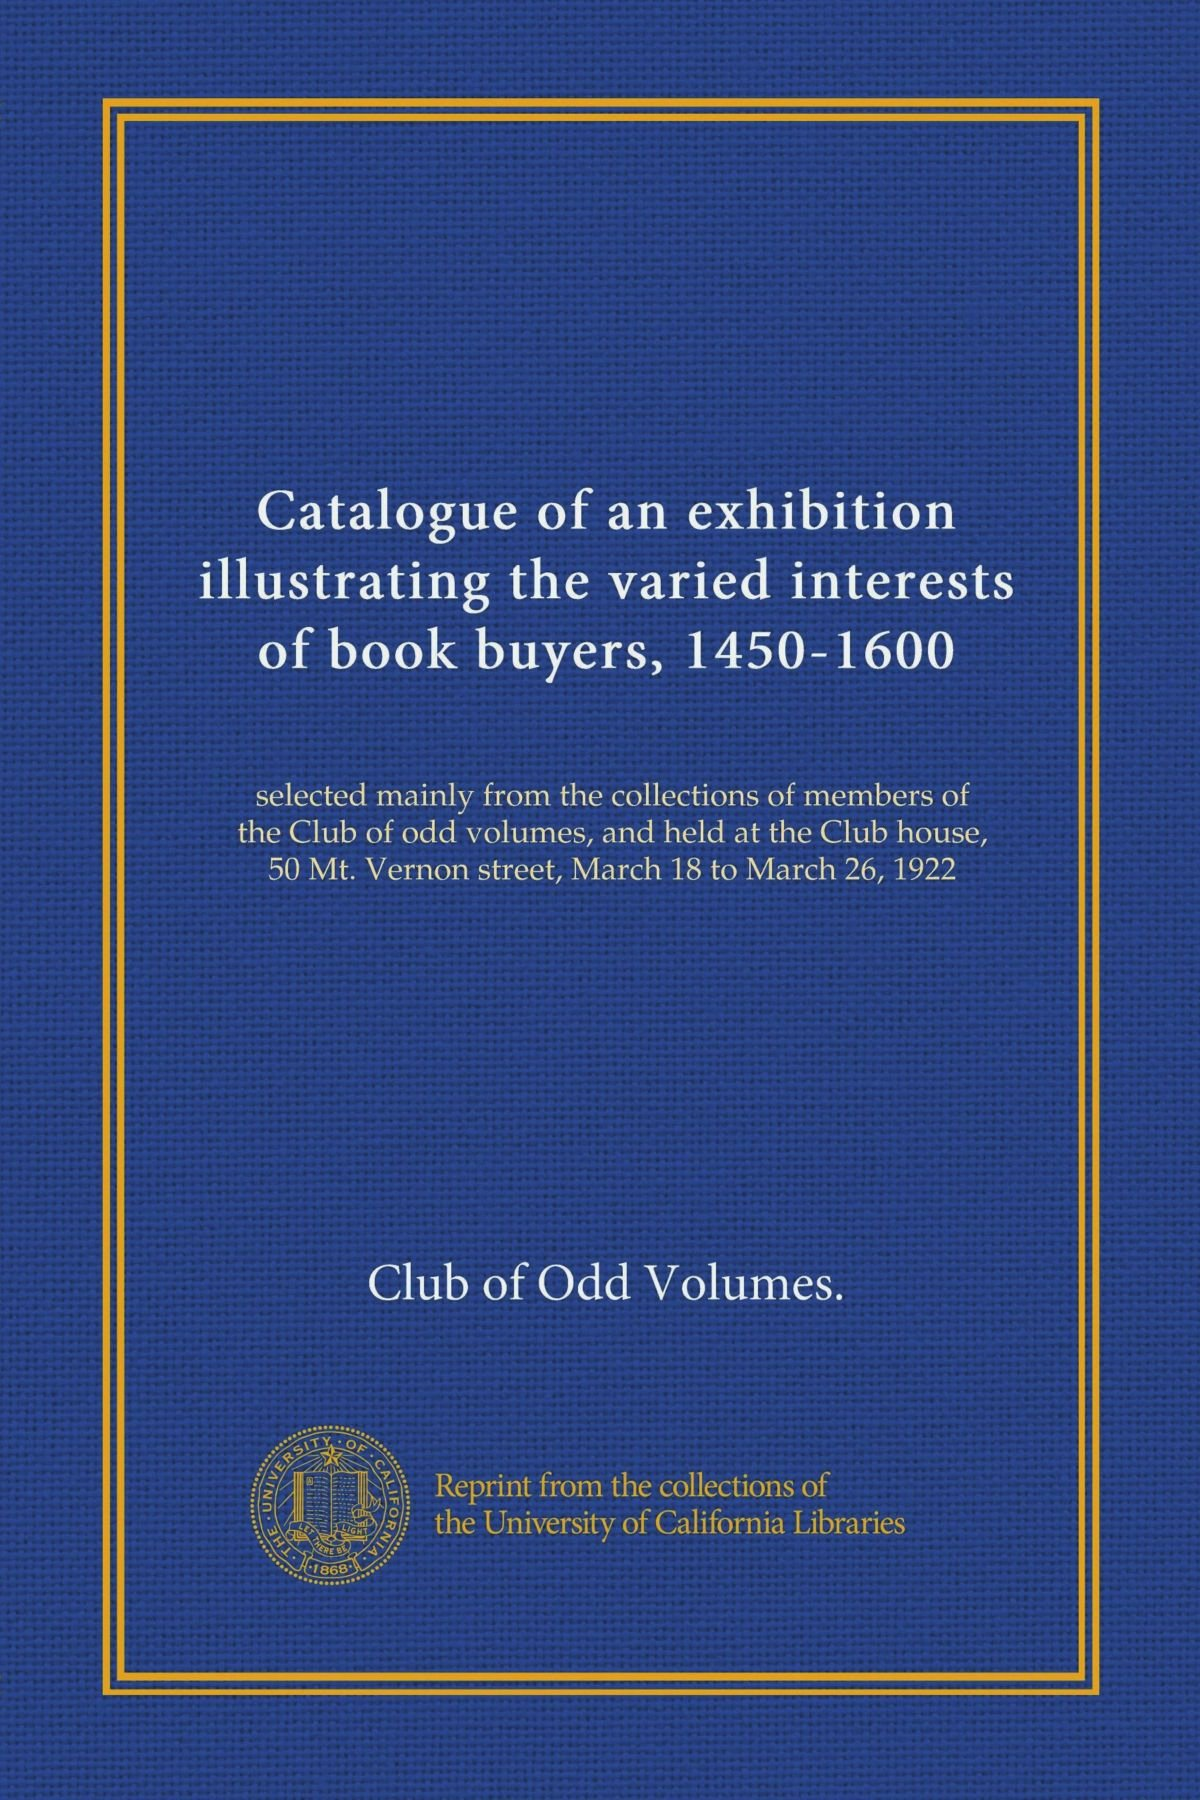 Download Catalogue of an exhibition illustrating the varied interests of book buyers, 1450-1600: selected mainly from the collections of members of the Club of ... Mt. Vernon street, March 18 to March 26, 1922 ebook